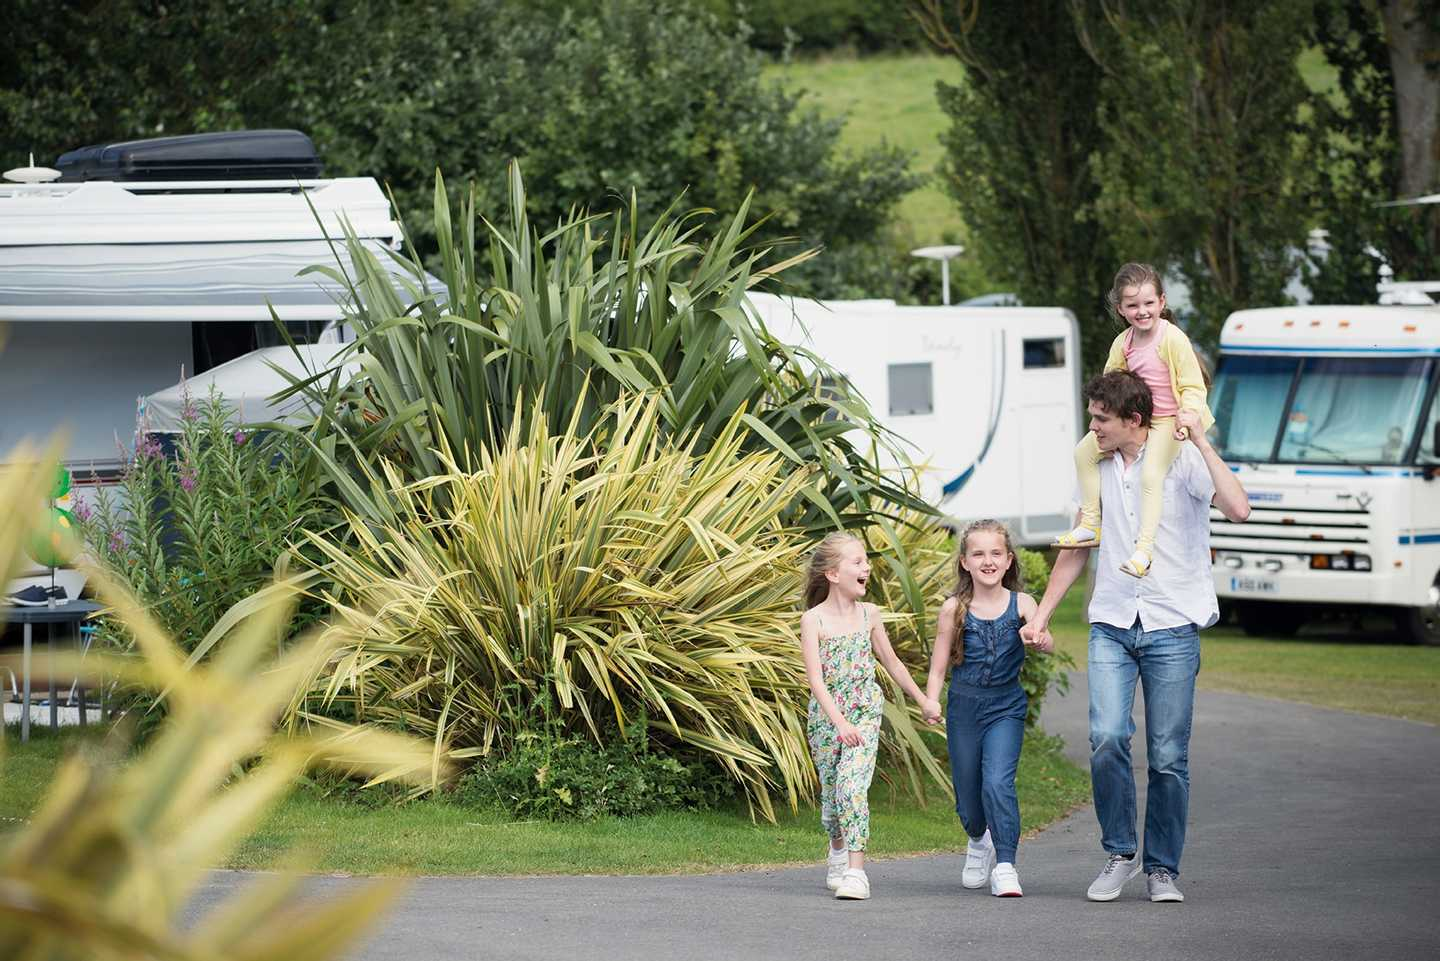 A family walking in the touring area at Seaview